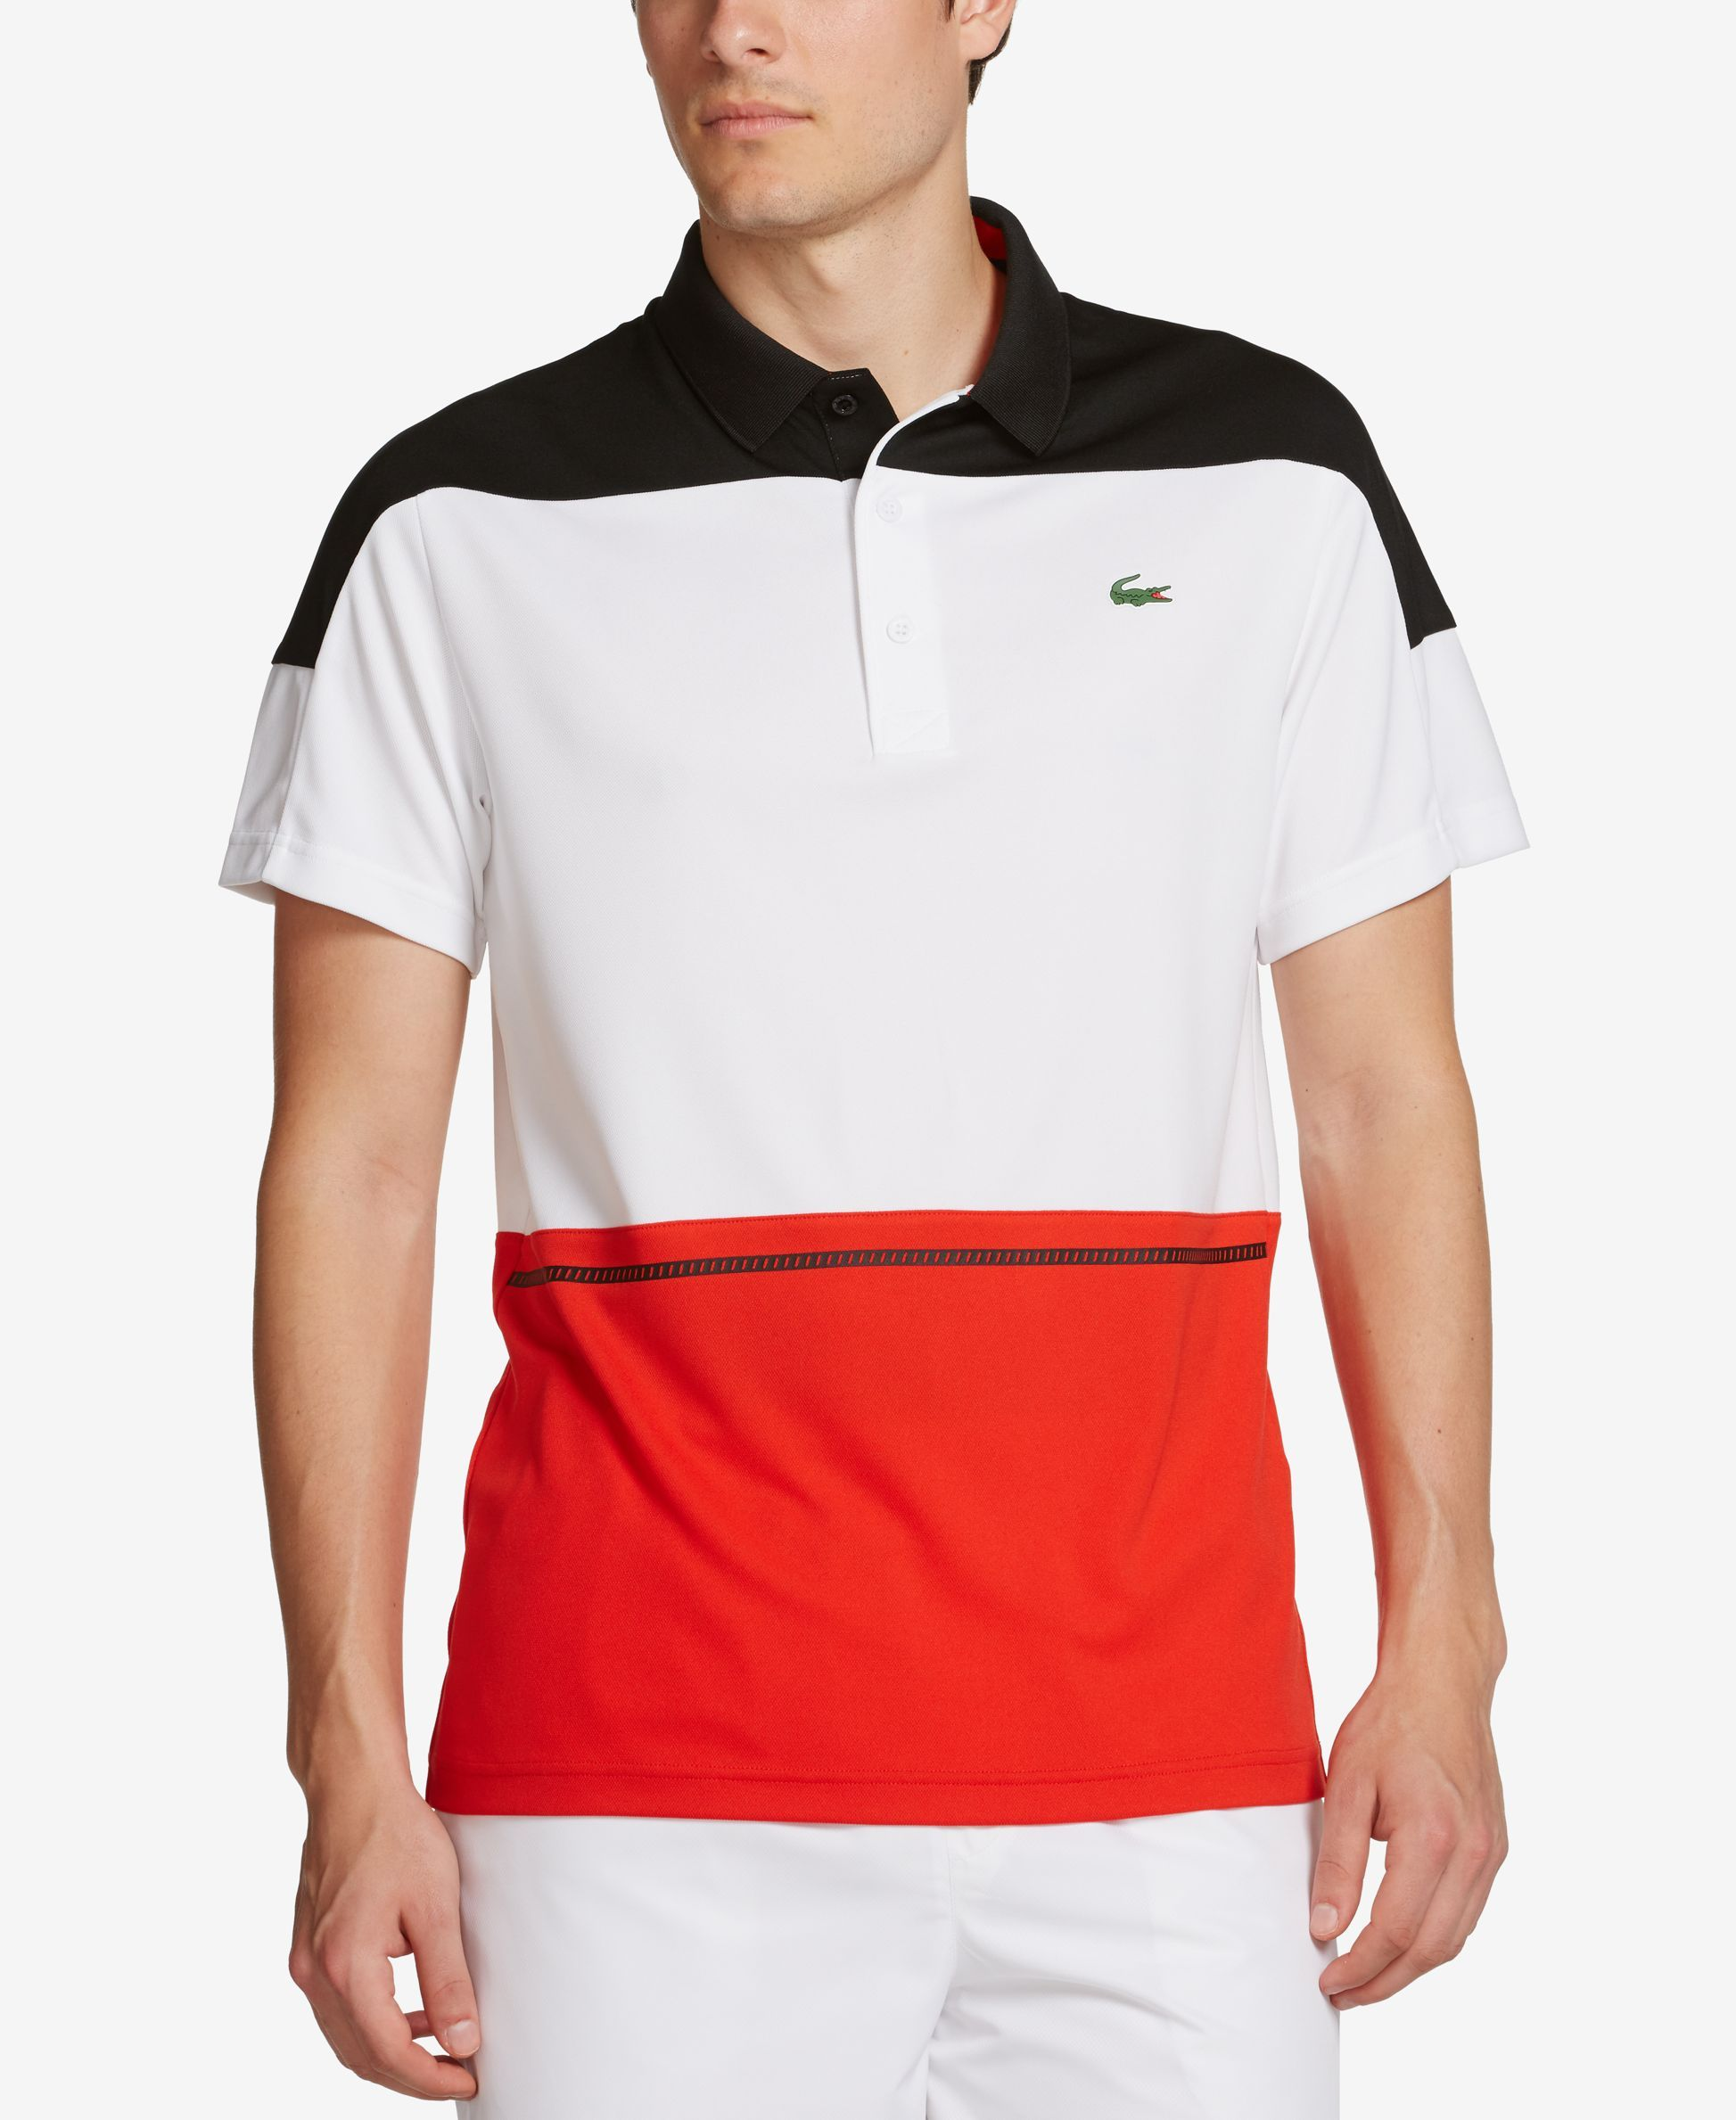 0de1b2cb62 Lacoste Men's Sport Colorblocked Performance Polo Shirt. Constructed in a  pique ...